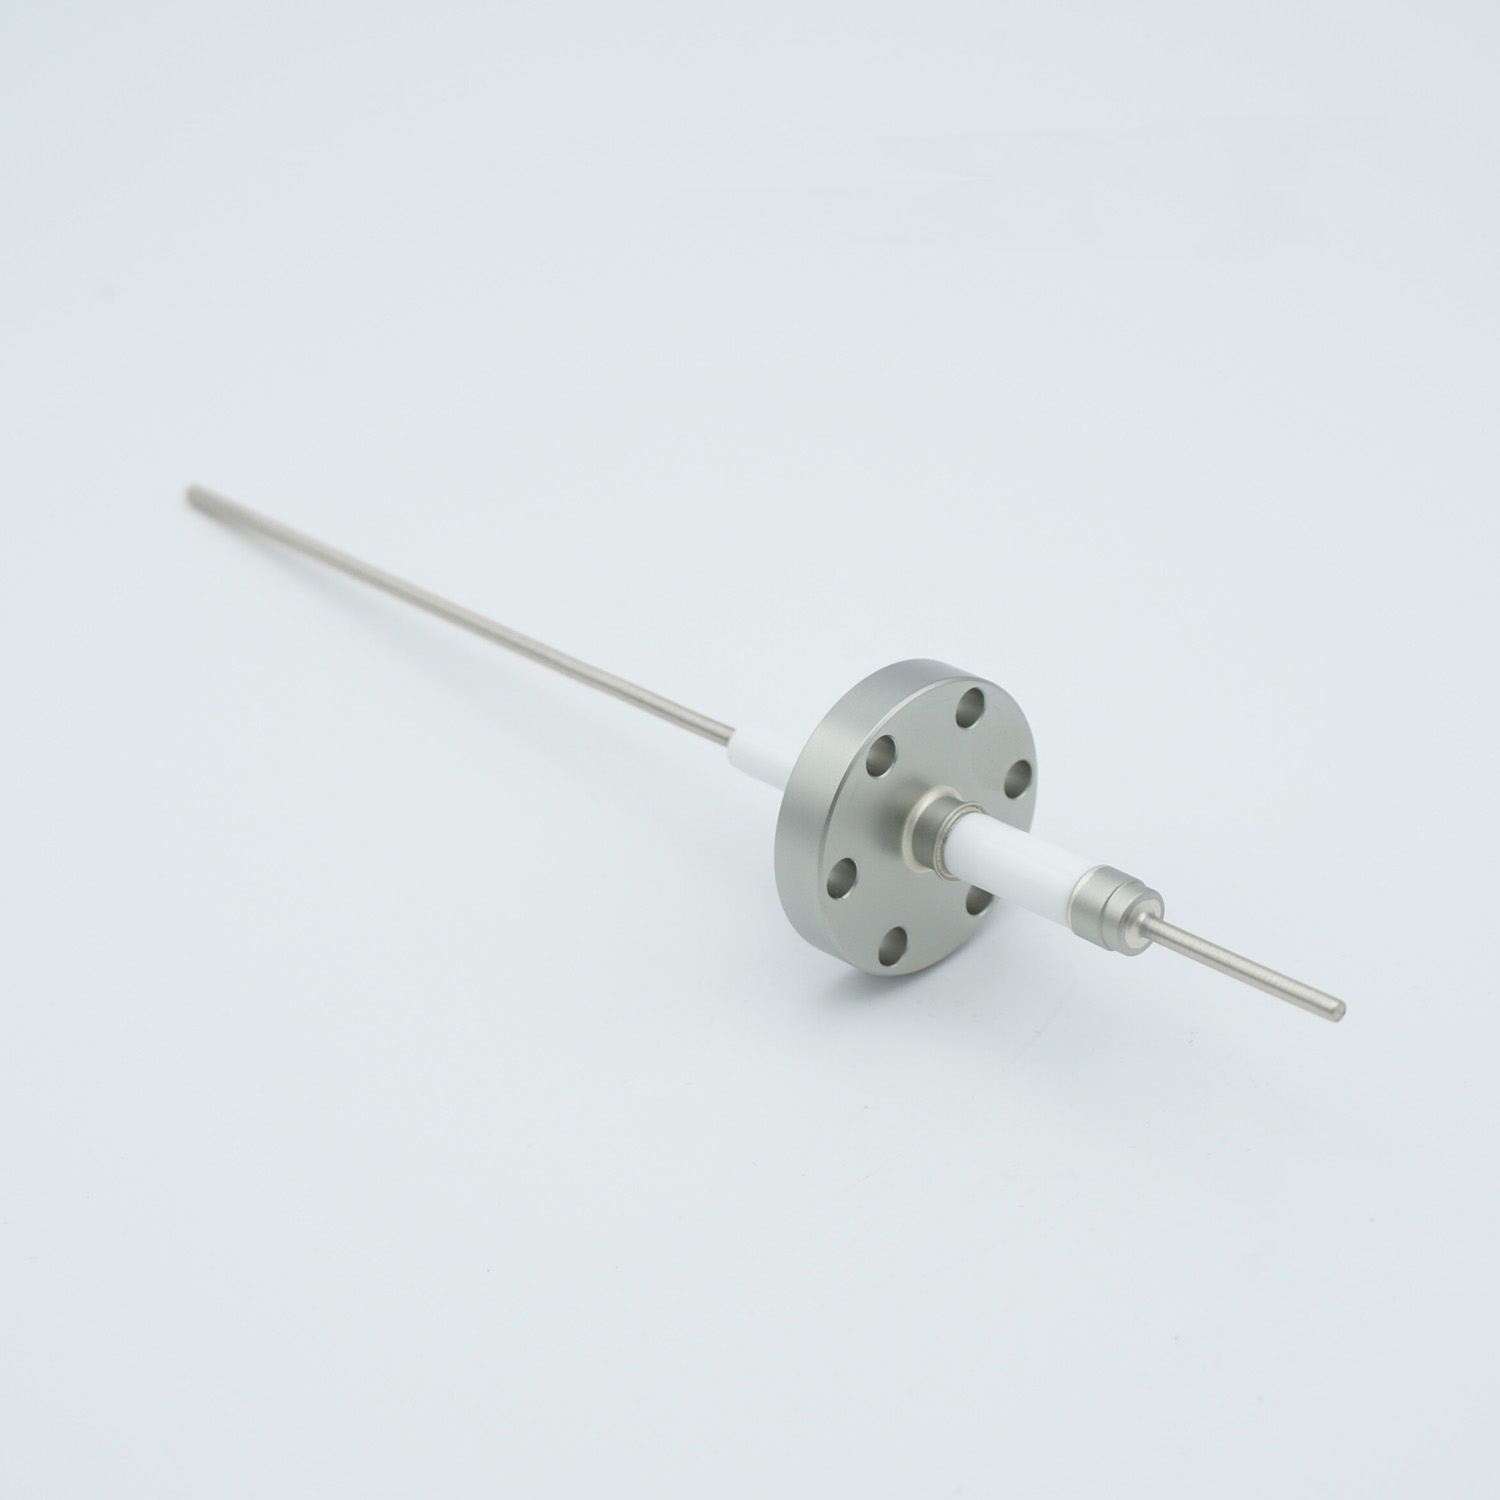 1 pin high voltage feedthrough 10000Volt / 3 Amp. Stainless steel conductor, DN19CF flange